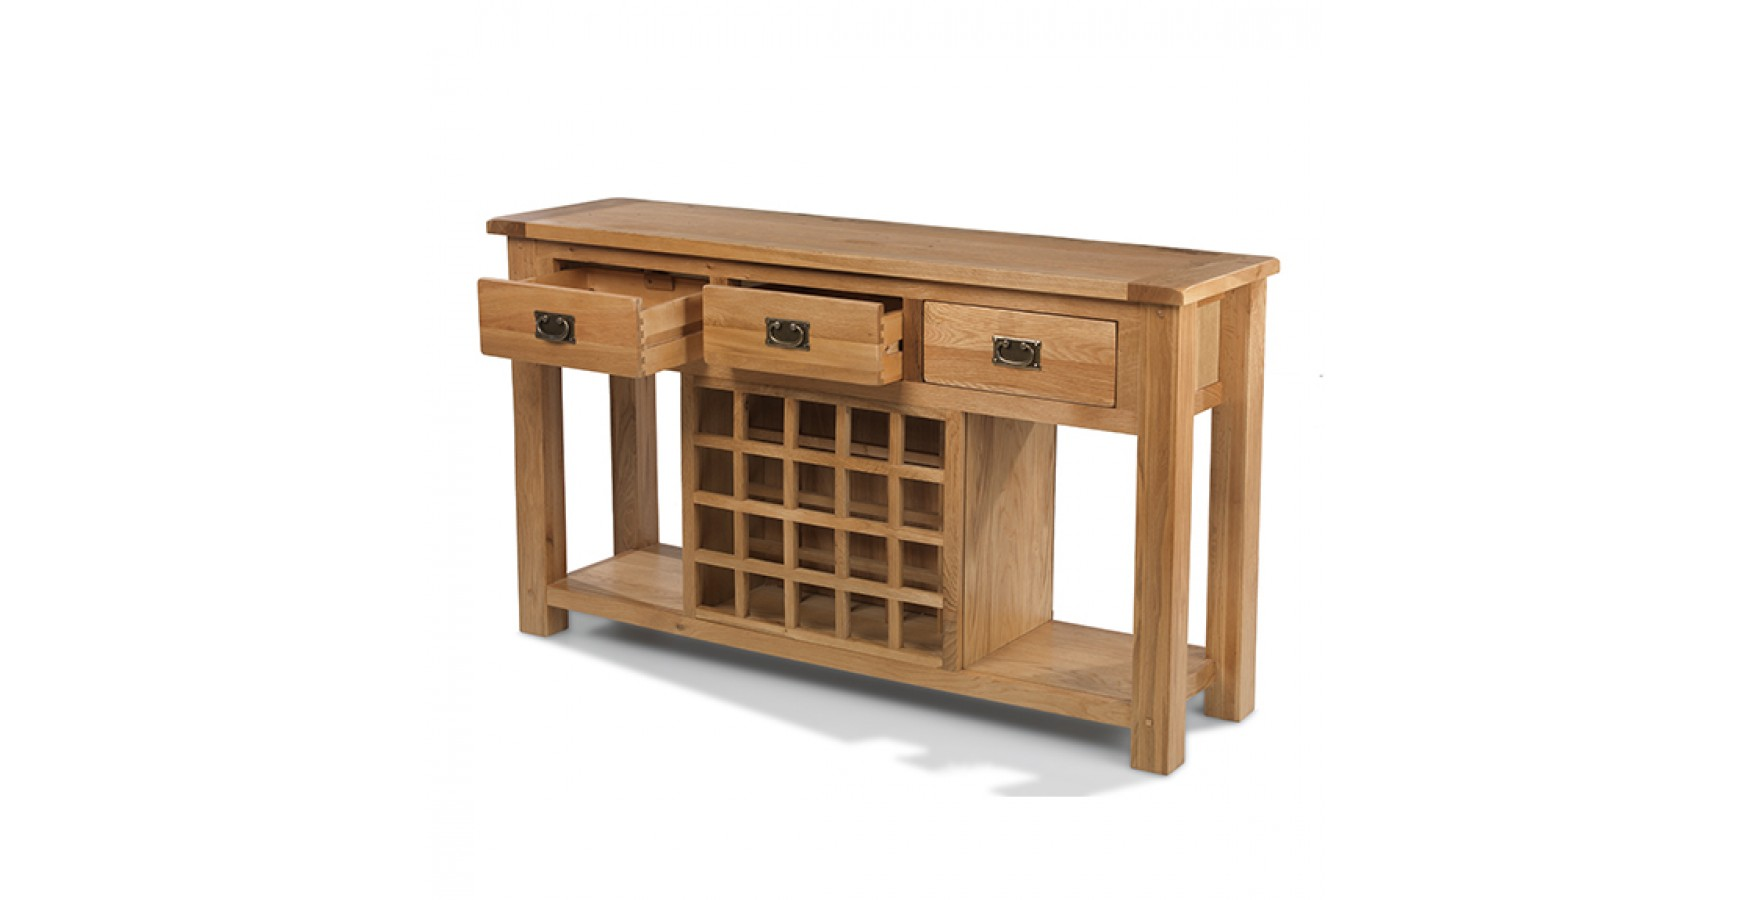 Rustic oak wine rack console table lifestyle furniture uk for Furniture uk